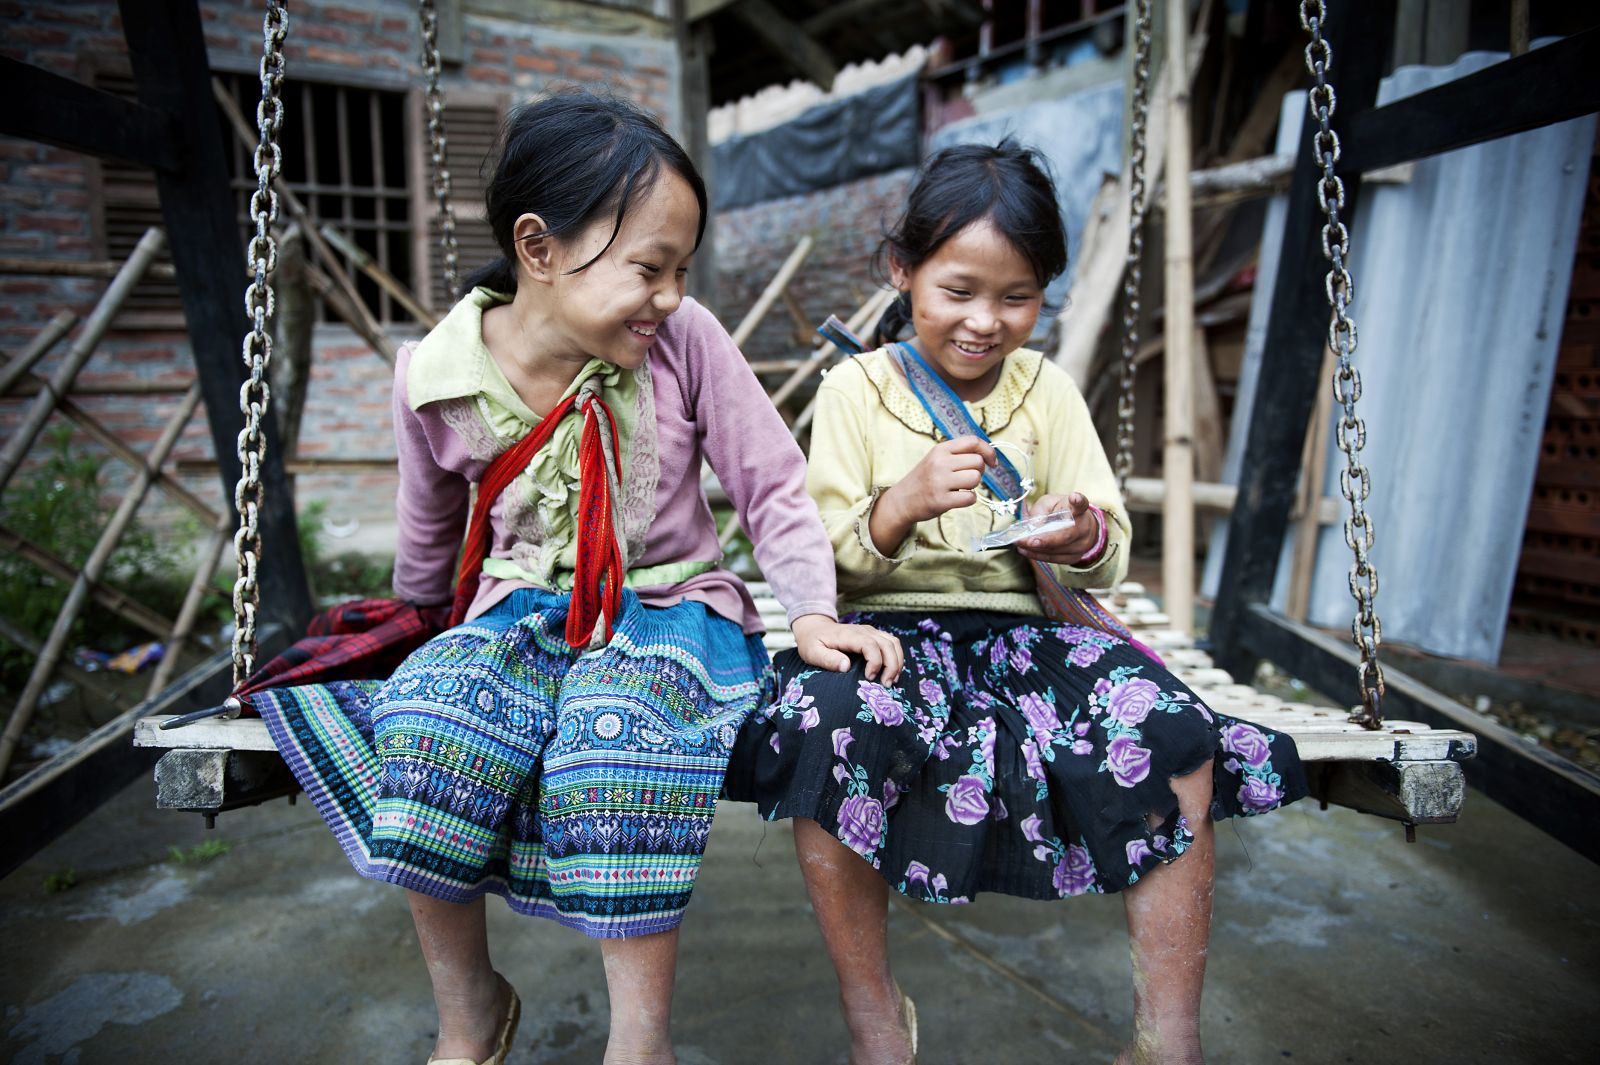 Little girls from a local hill tribe laugh on a swing set in Sapa, Viet Nam.